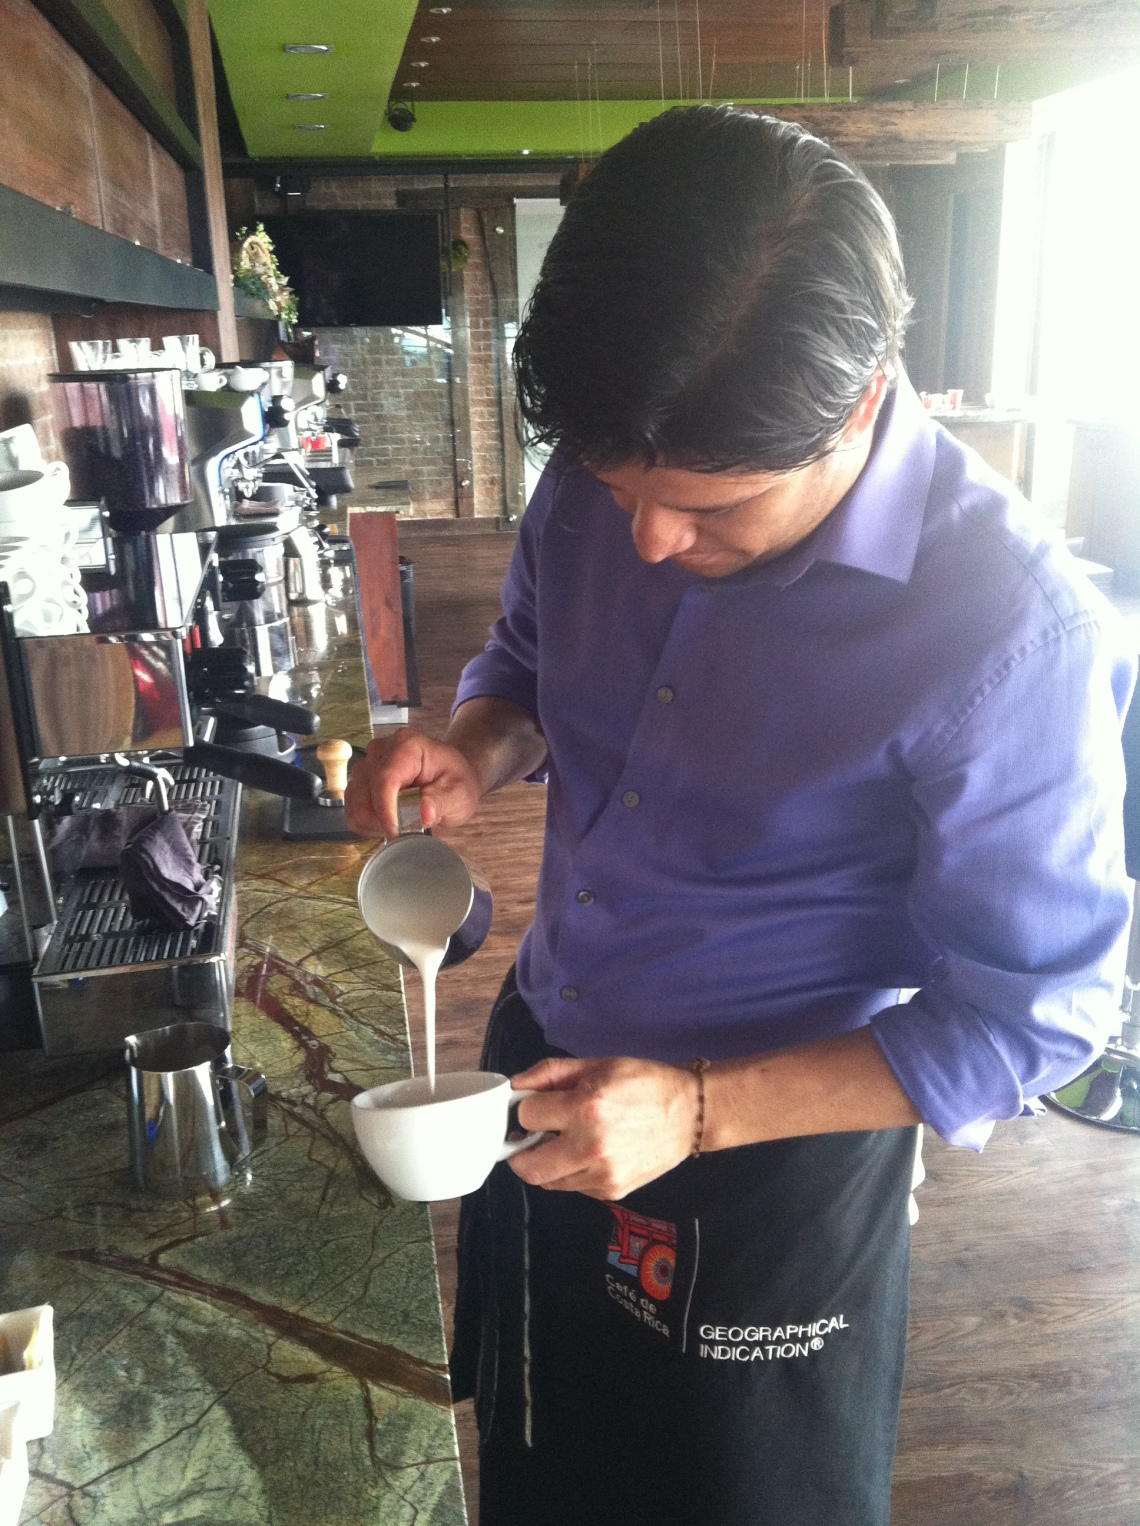 And performing the delicate hand pour required for latte art